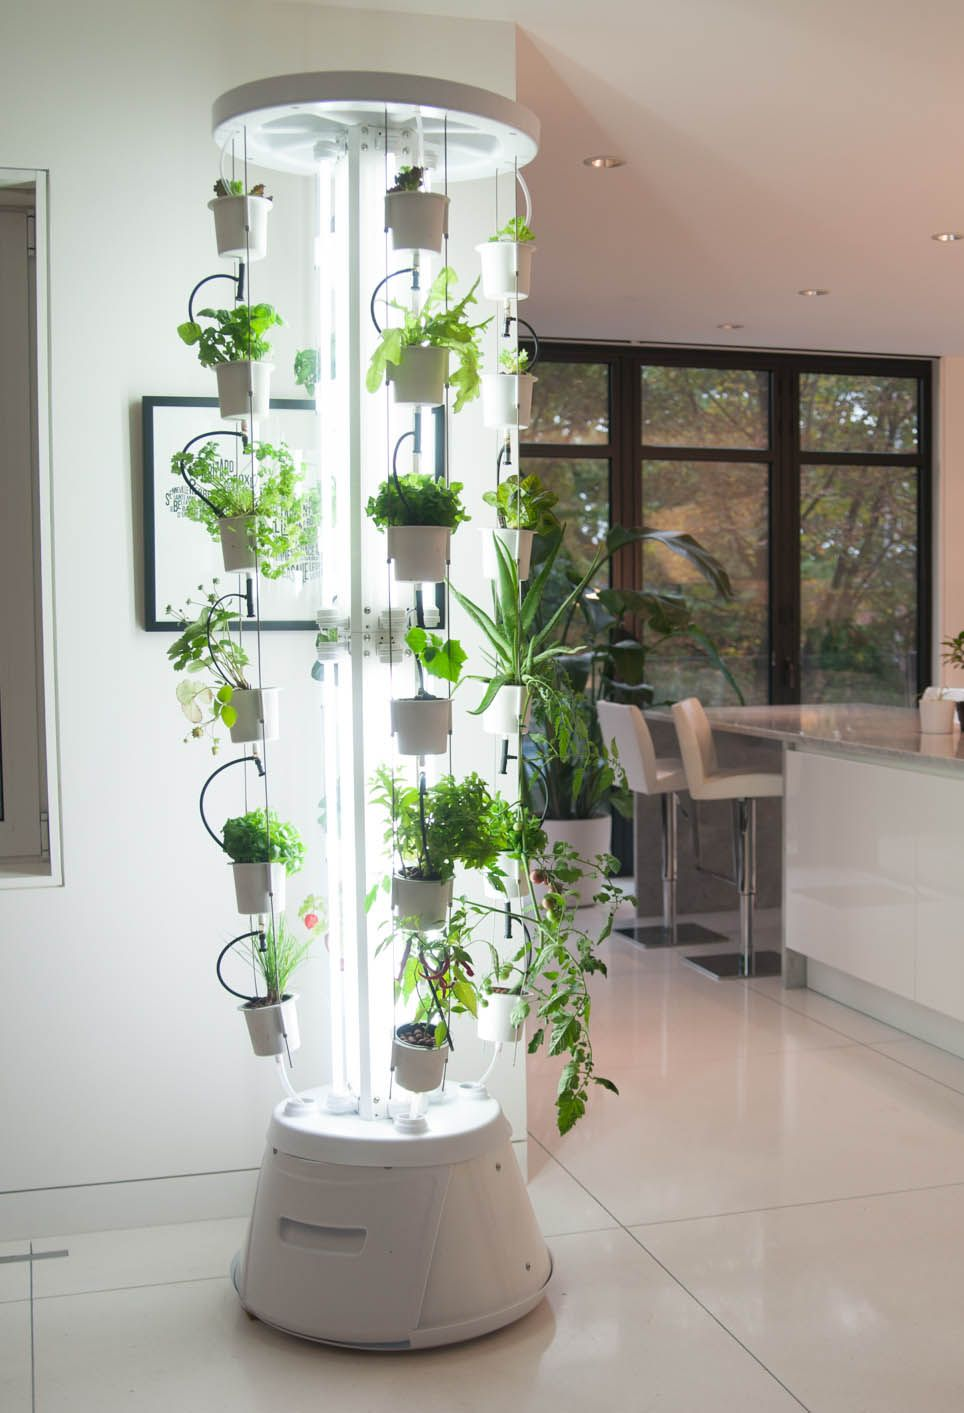 The NutriTower U2013 Indoor Gardening System